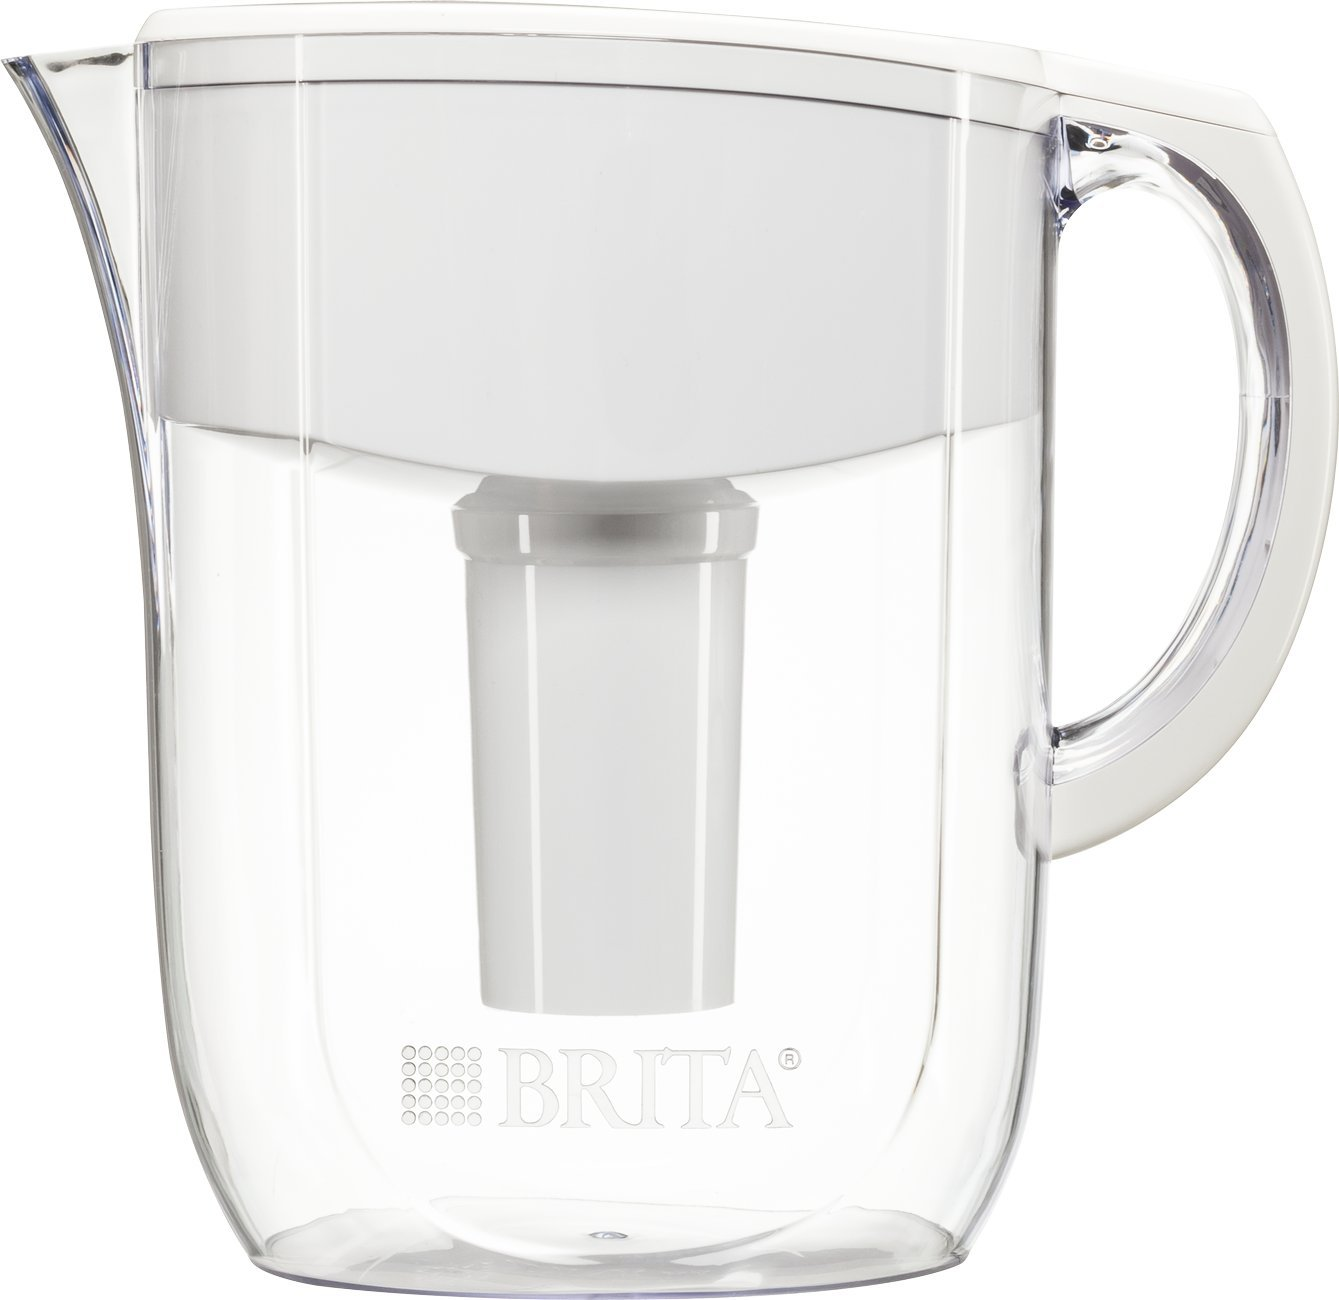 brita water filter pitcher. Buy Brita Everyday Water Filter Pitcher, 10 Cup Online At Low Prices In India - Amazon.in Pitcher